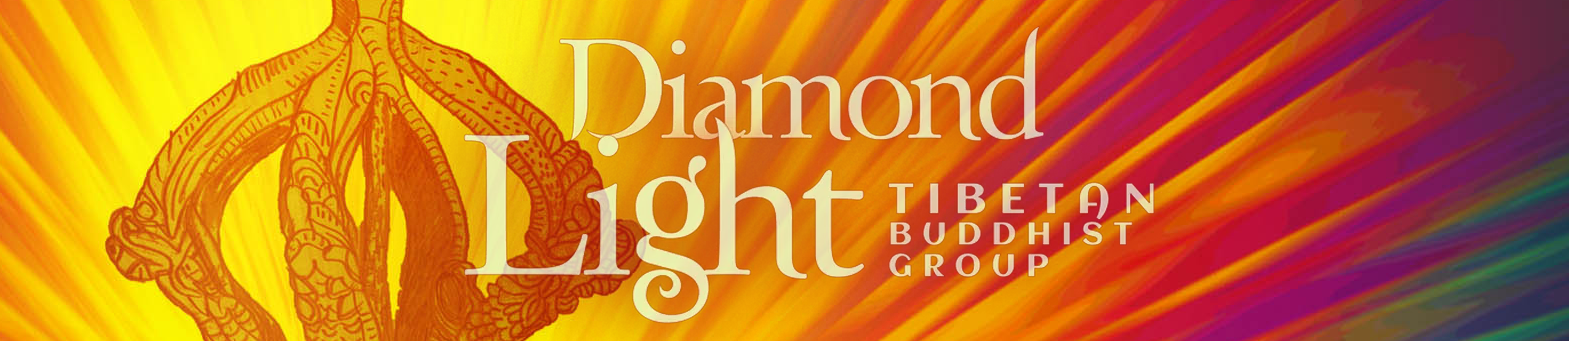 Diamond Light Tibetan Buddhist Group